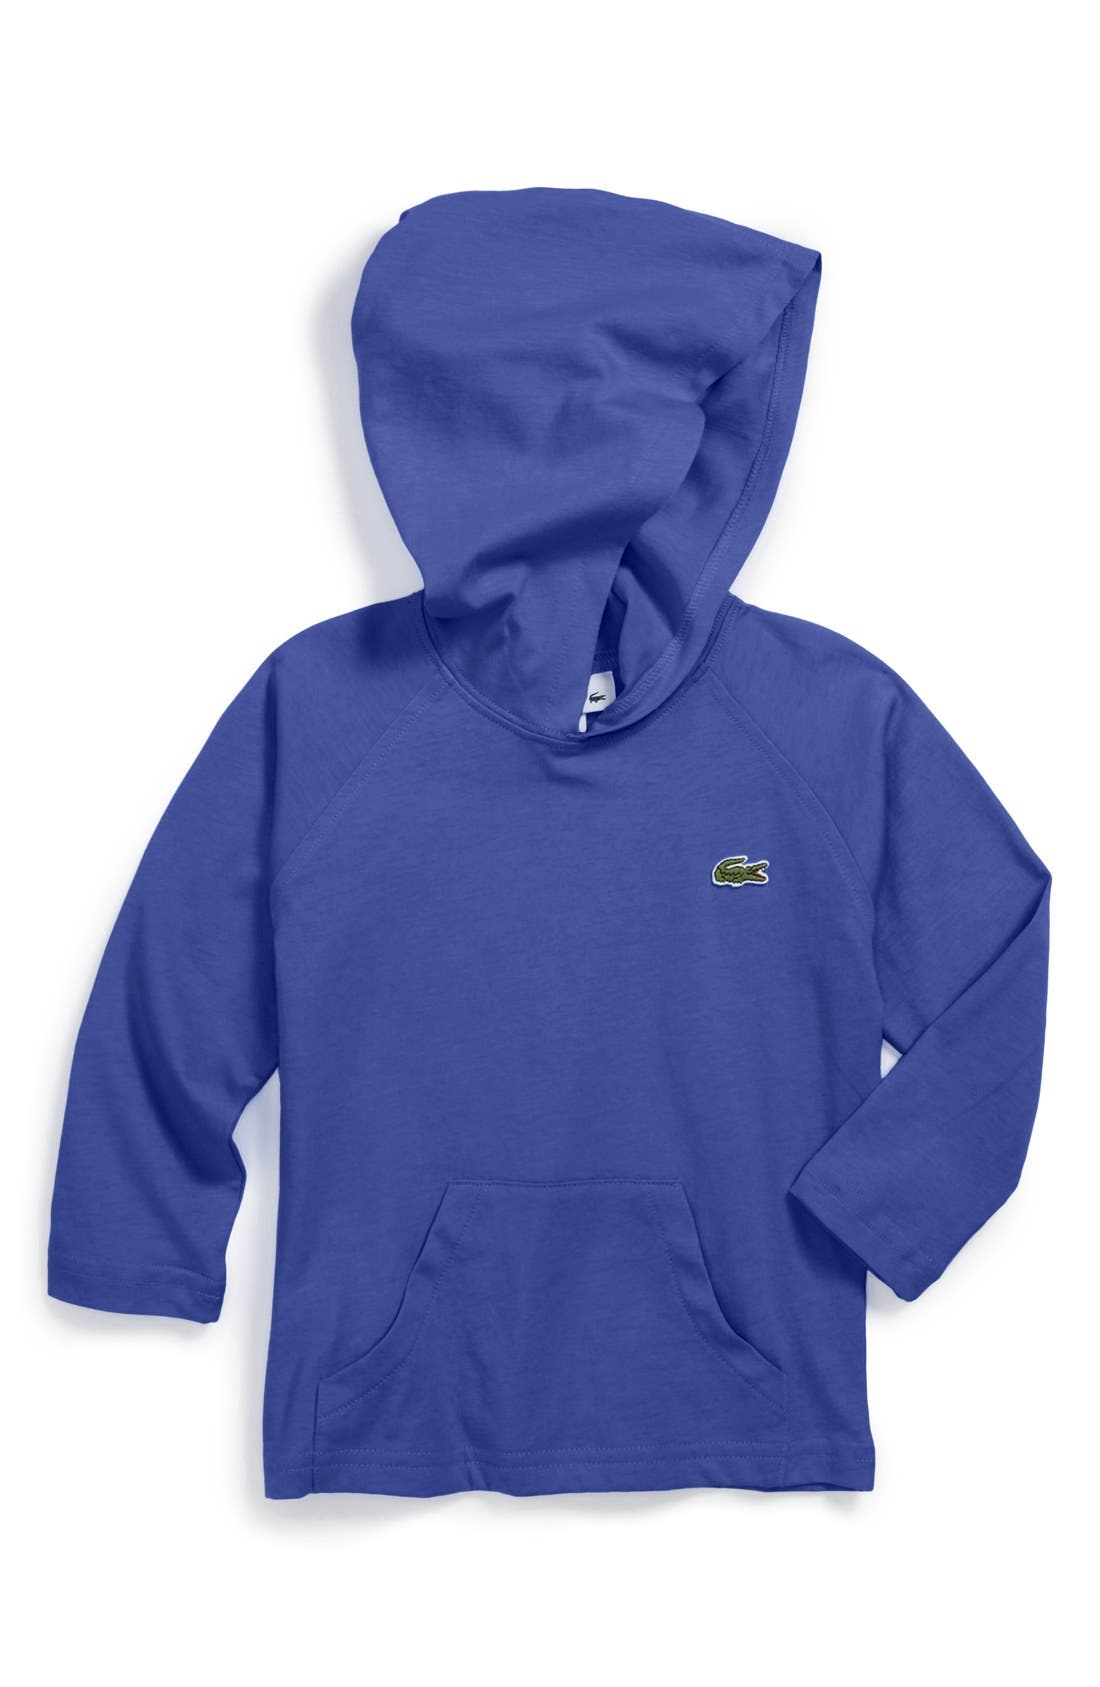 Main Image - Lacoste Pullover Hoodie (Toddler)